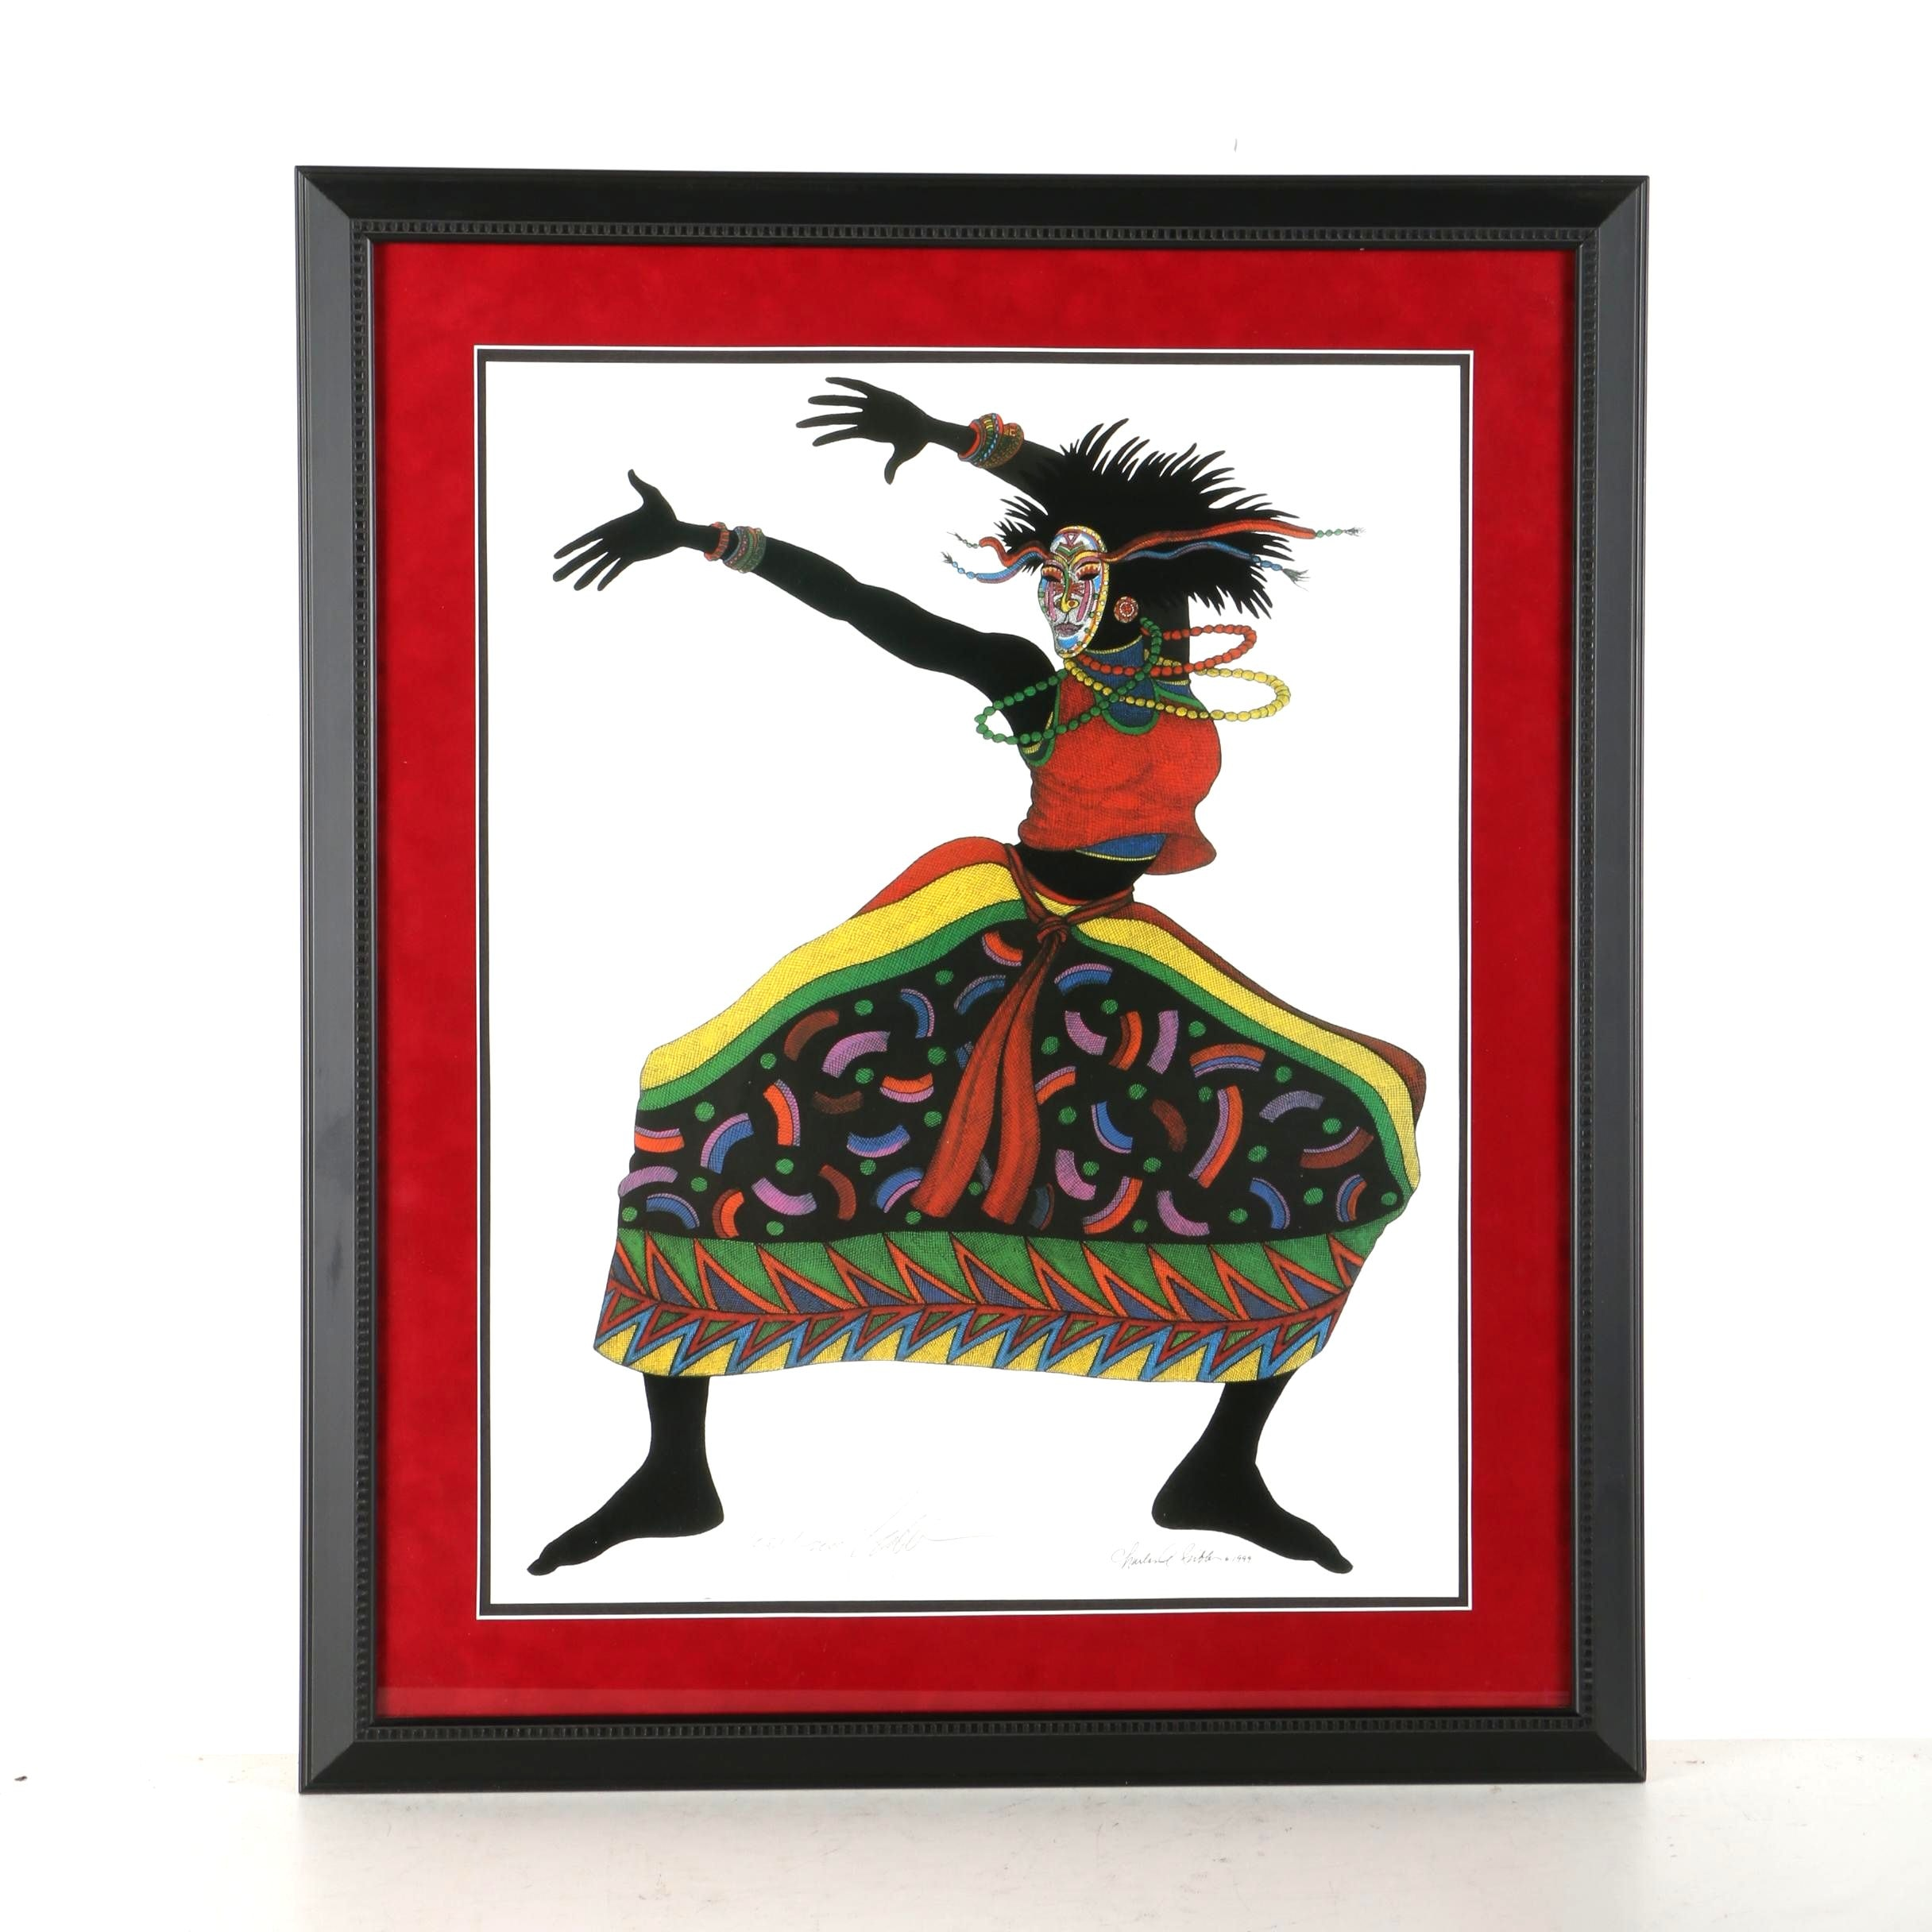 Charles Bibbs Limited Edition Offset Lithograph of Dancing Woman